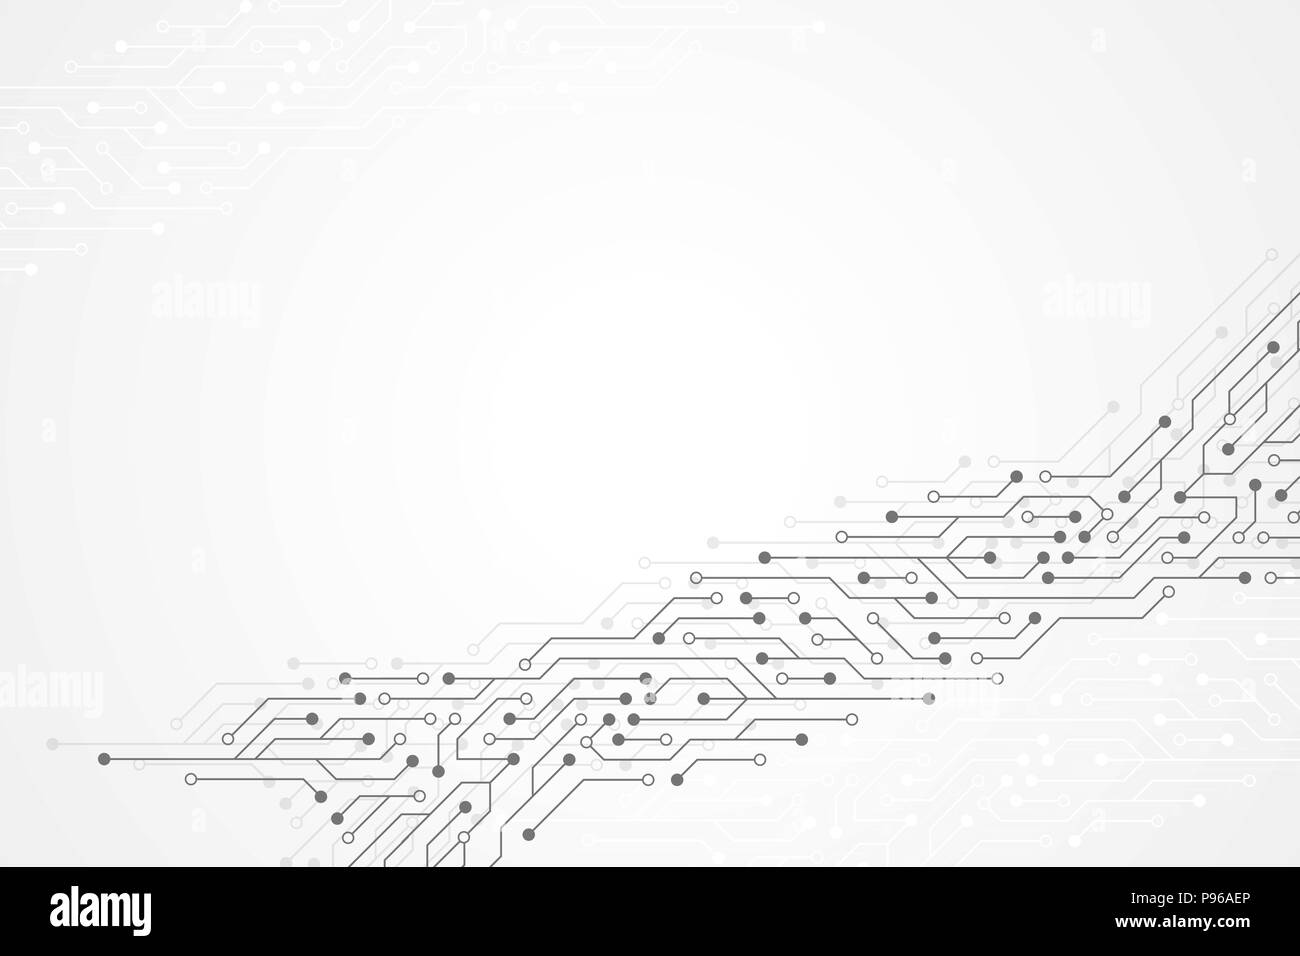 Abstract Circuit Board Background By Silvertiger: Circuit Black And White Stock Photos & Images